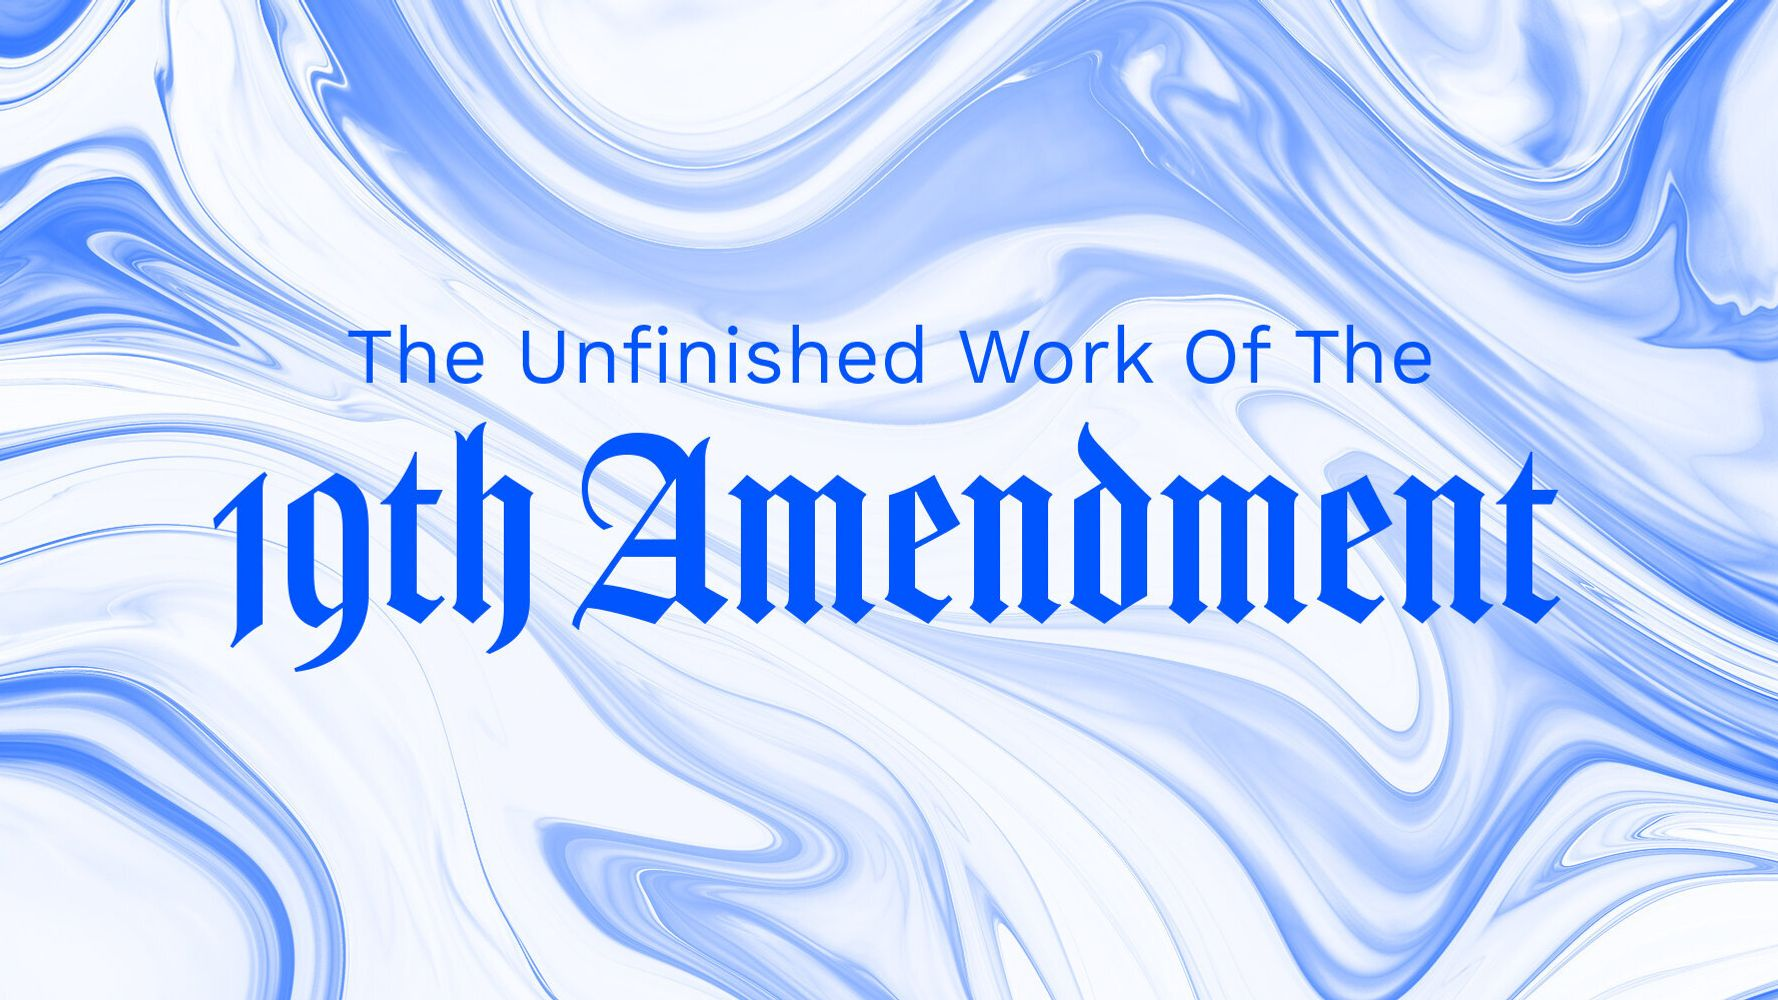 The Unfinished Work Of The 19th Amendment